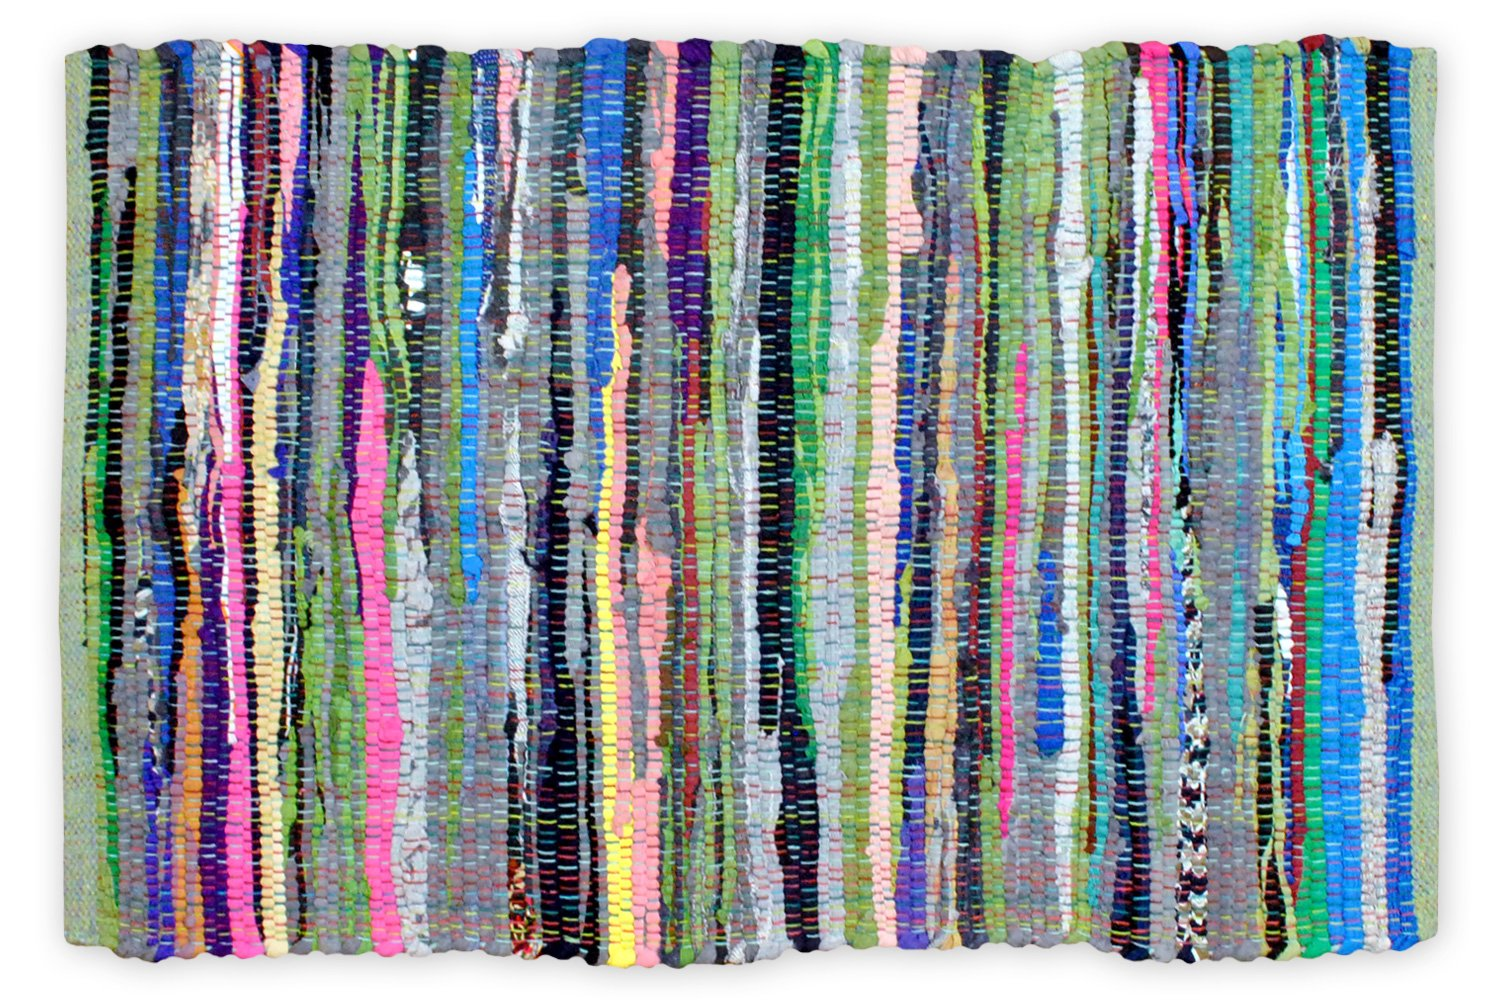 DII Contemporary Reversible One of A Kind Area Rug, Rag Rug For Bedroom, Living Room, Kitchen, 8 x 10' - Multi Colored by DII